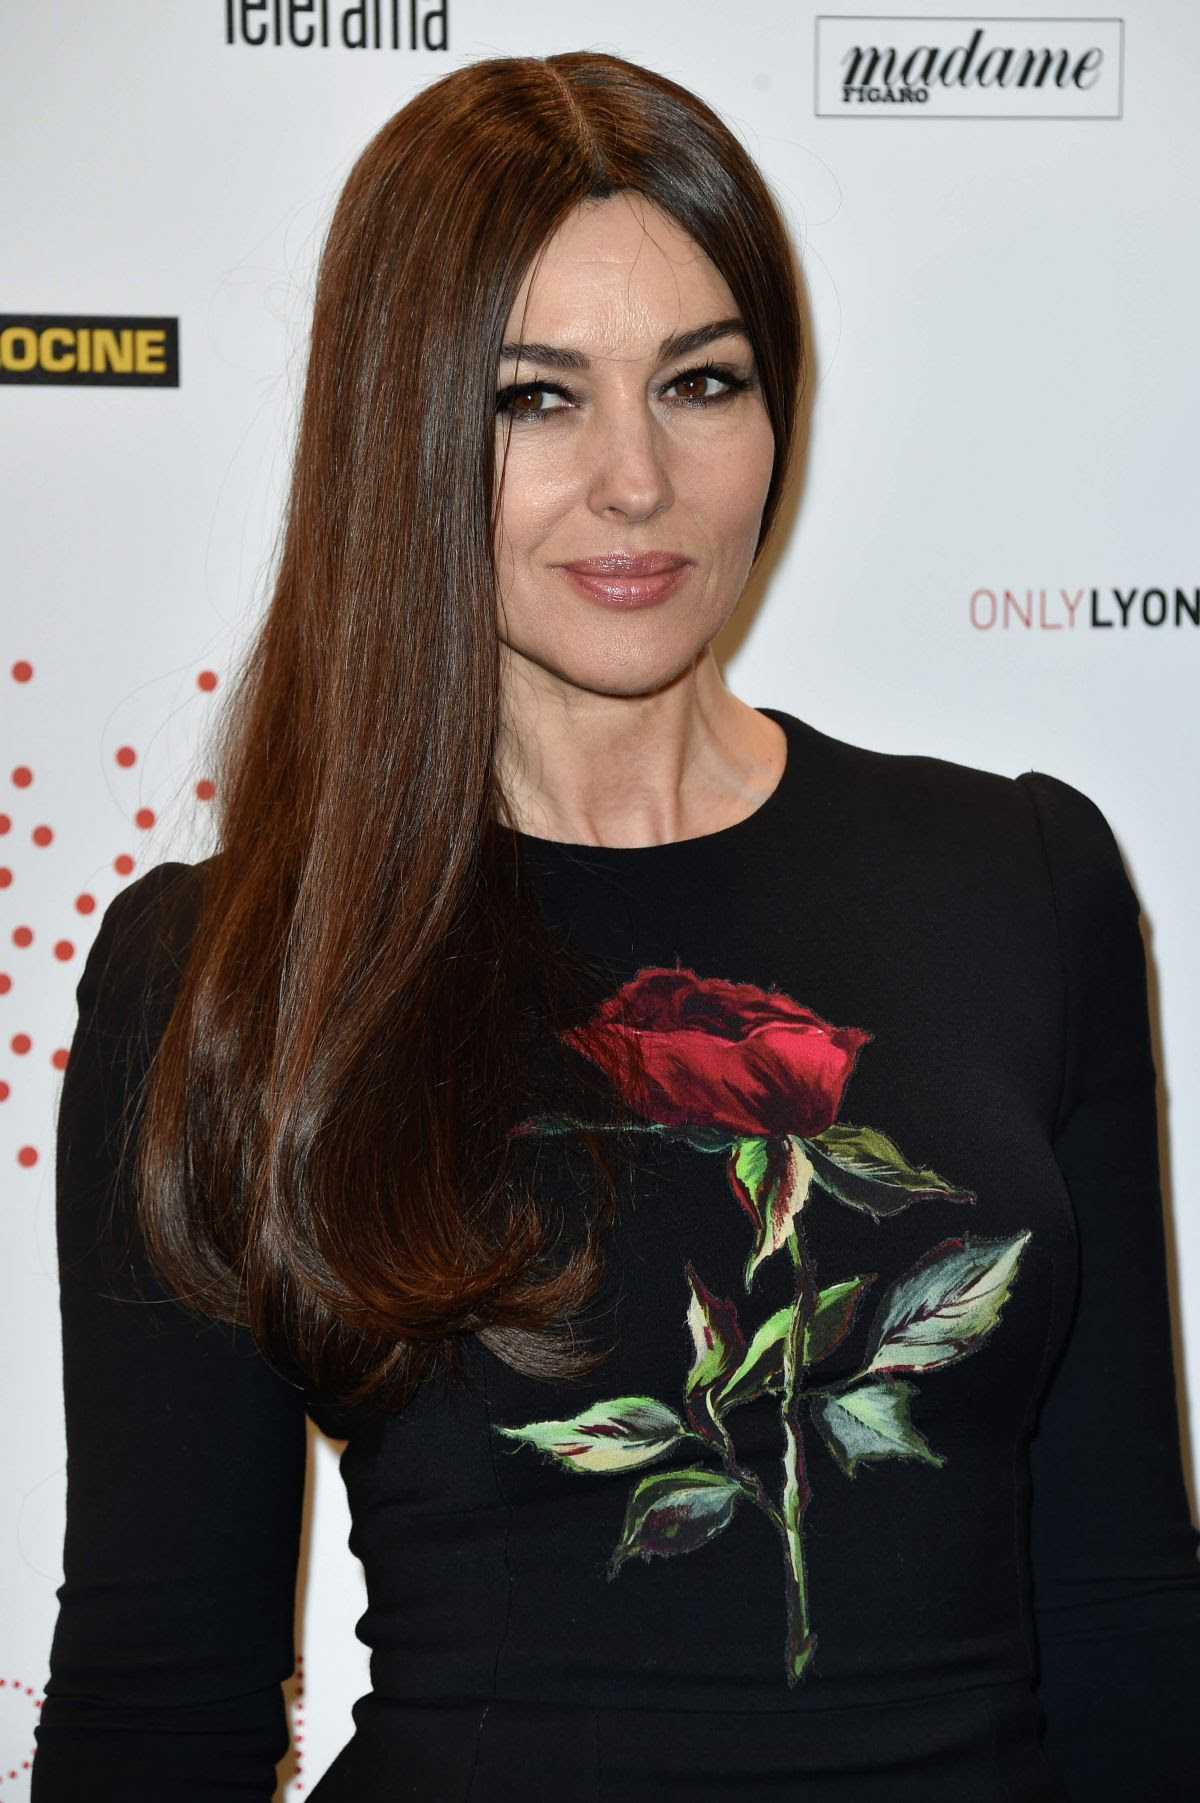 MONICA BELLUCI at Le Cinema Invente Exhibition Preview In Paris